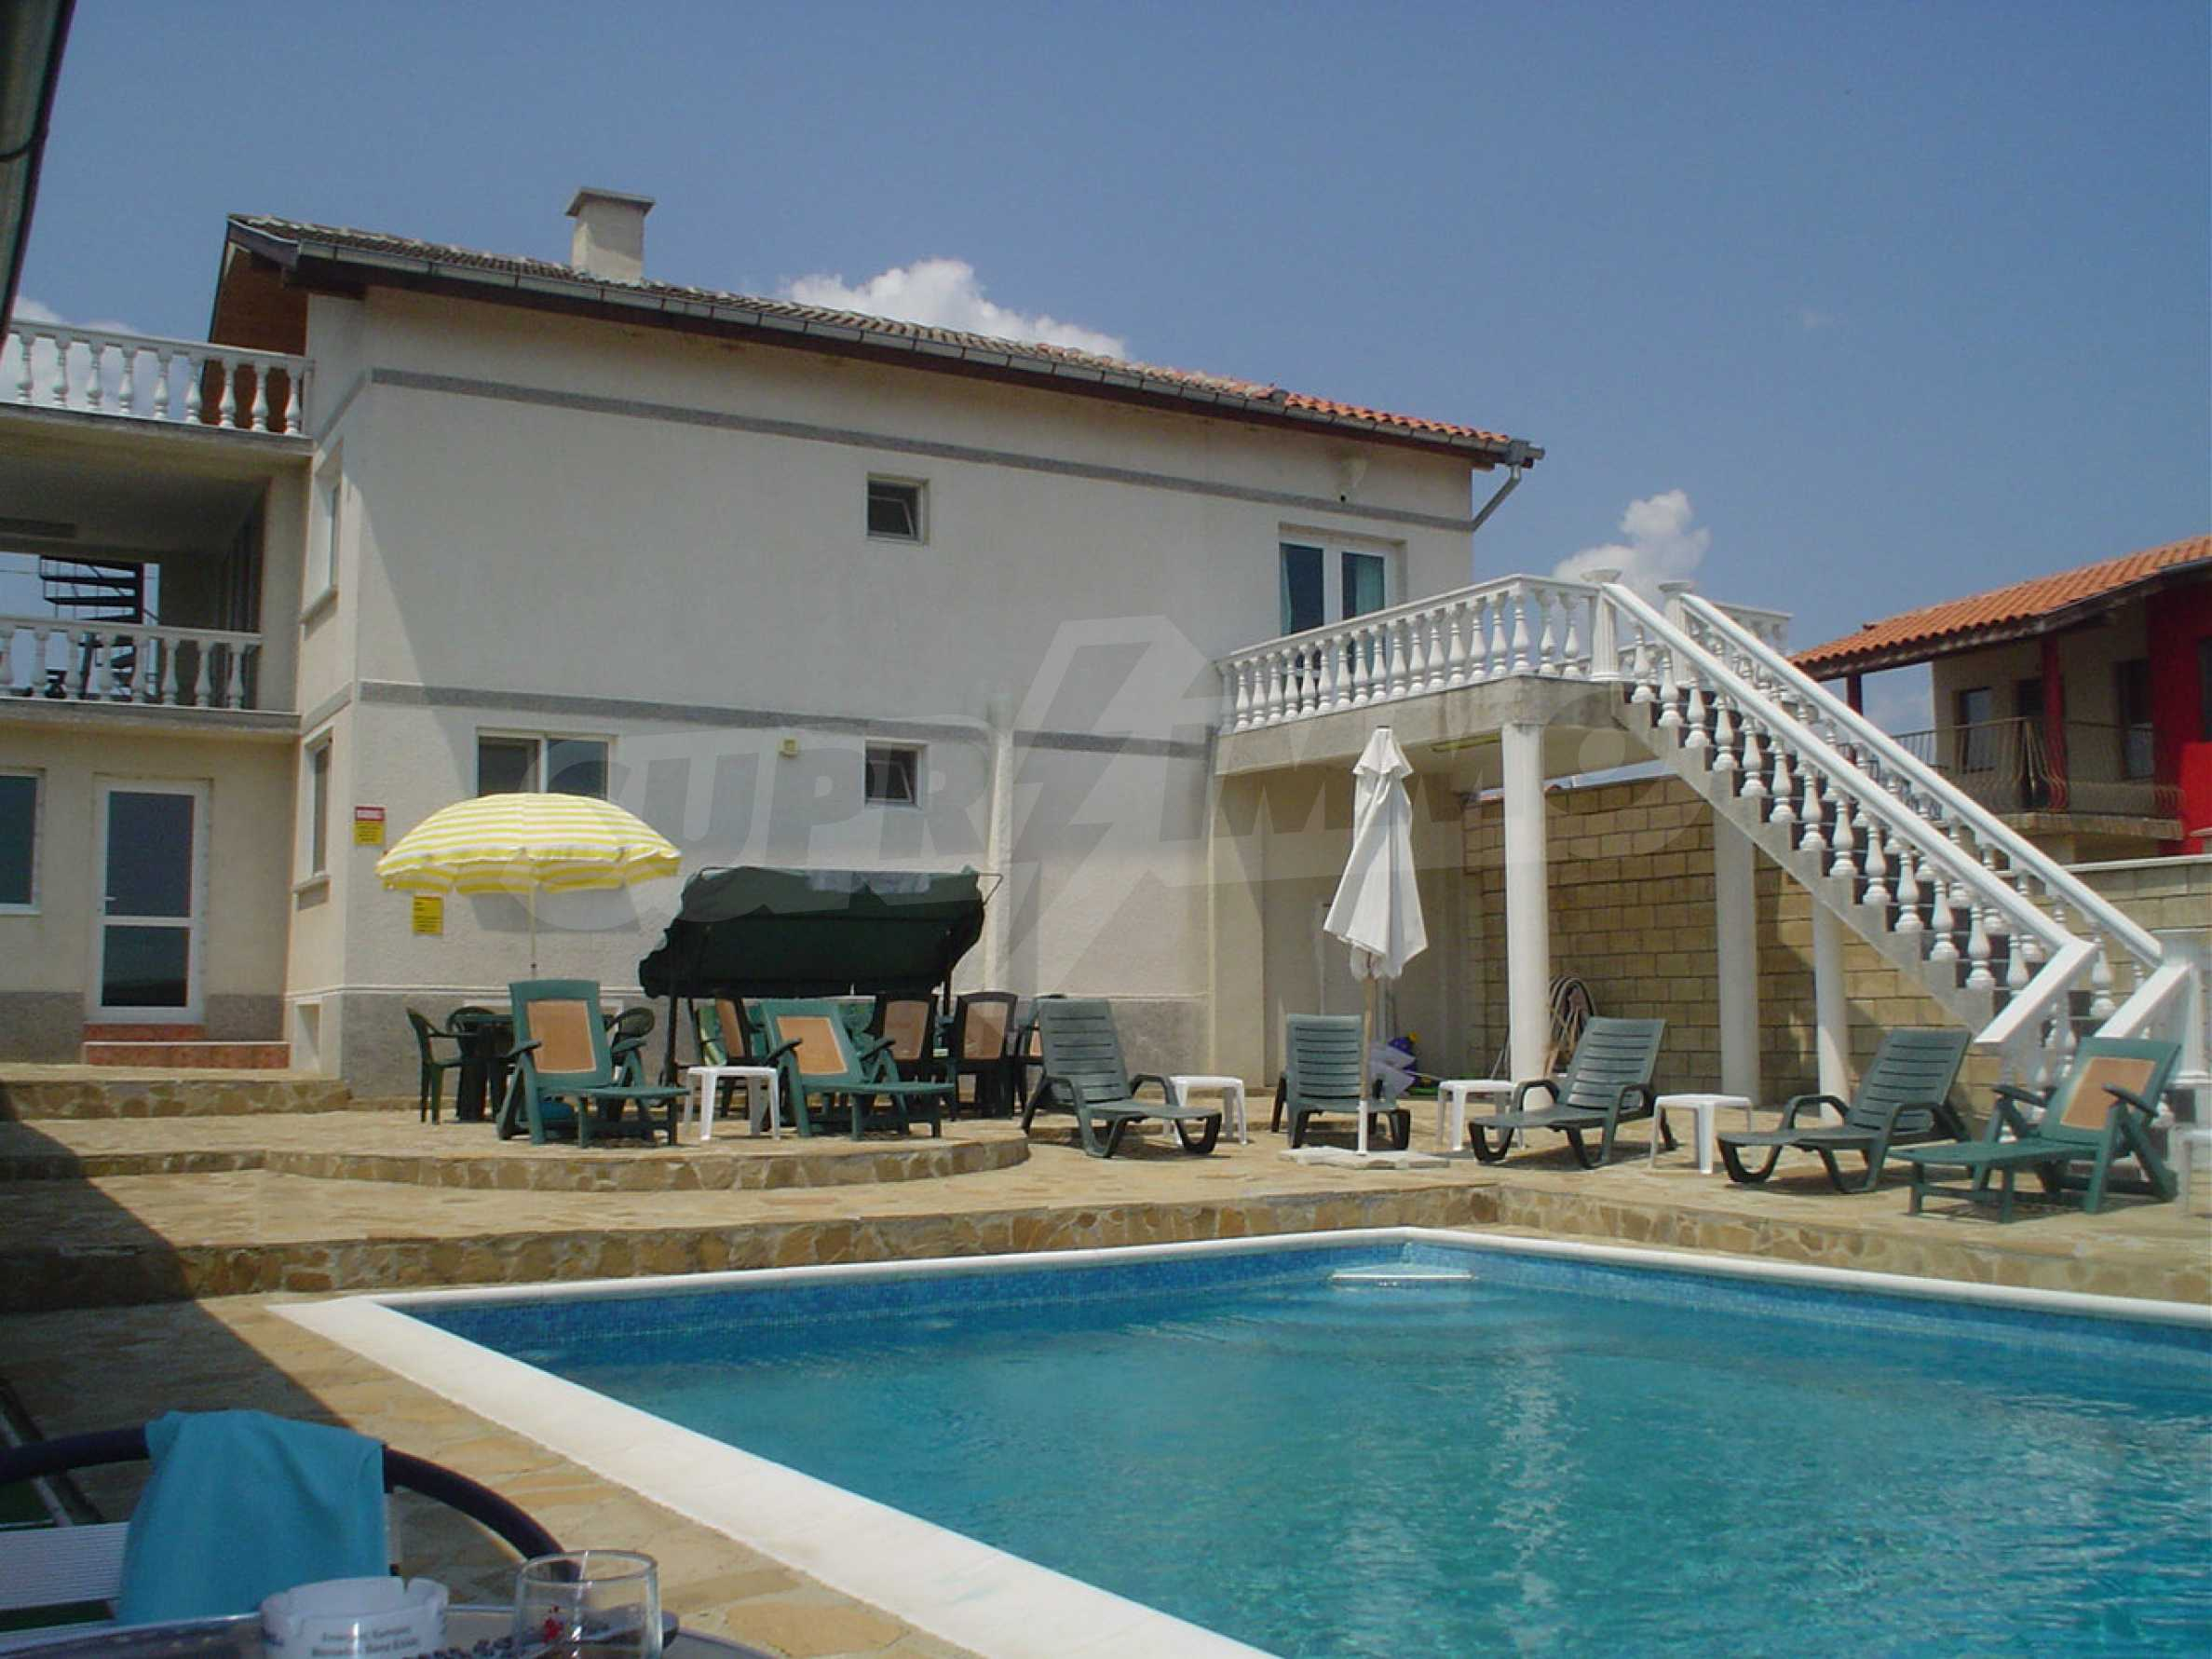 Nice guest house with pool and bar